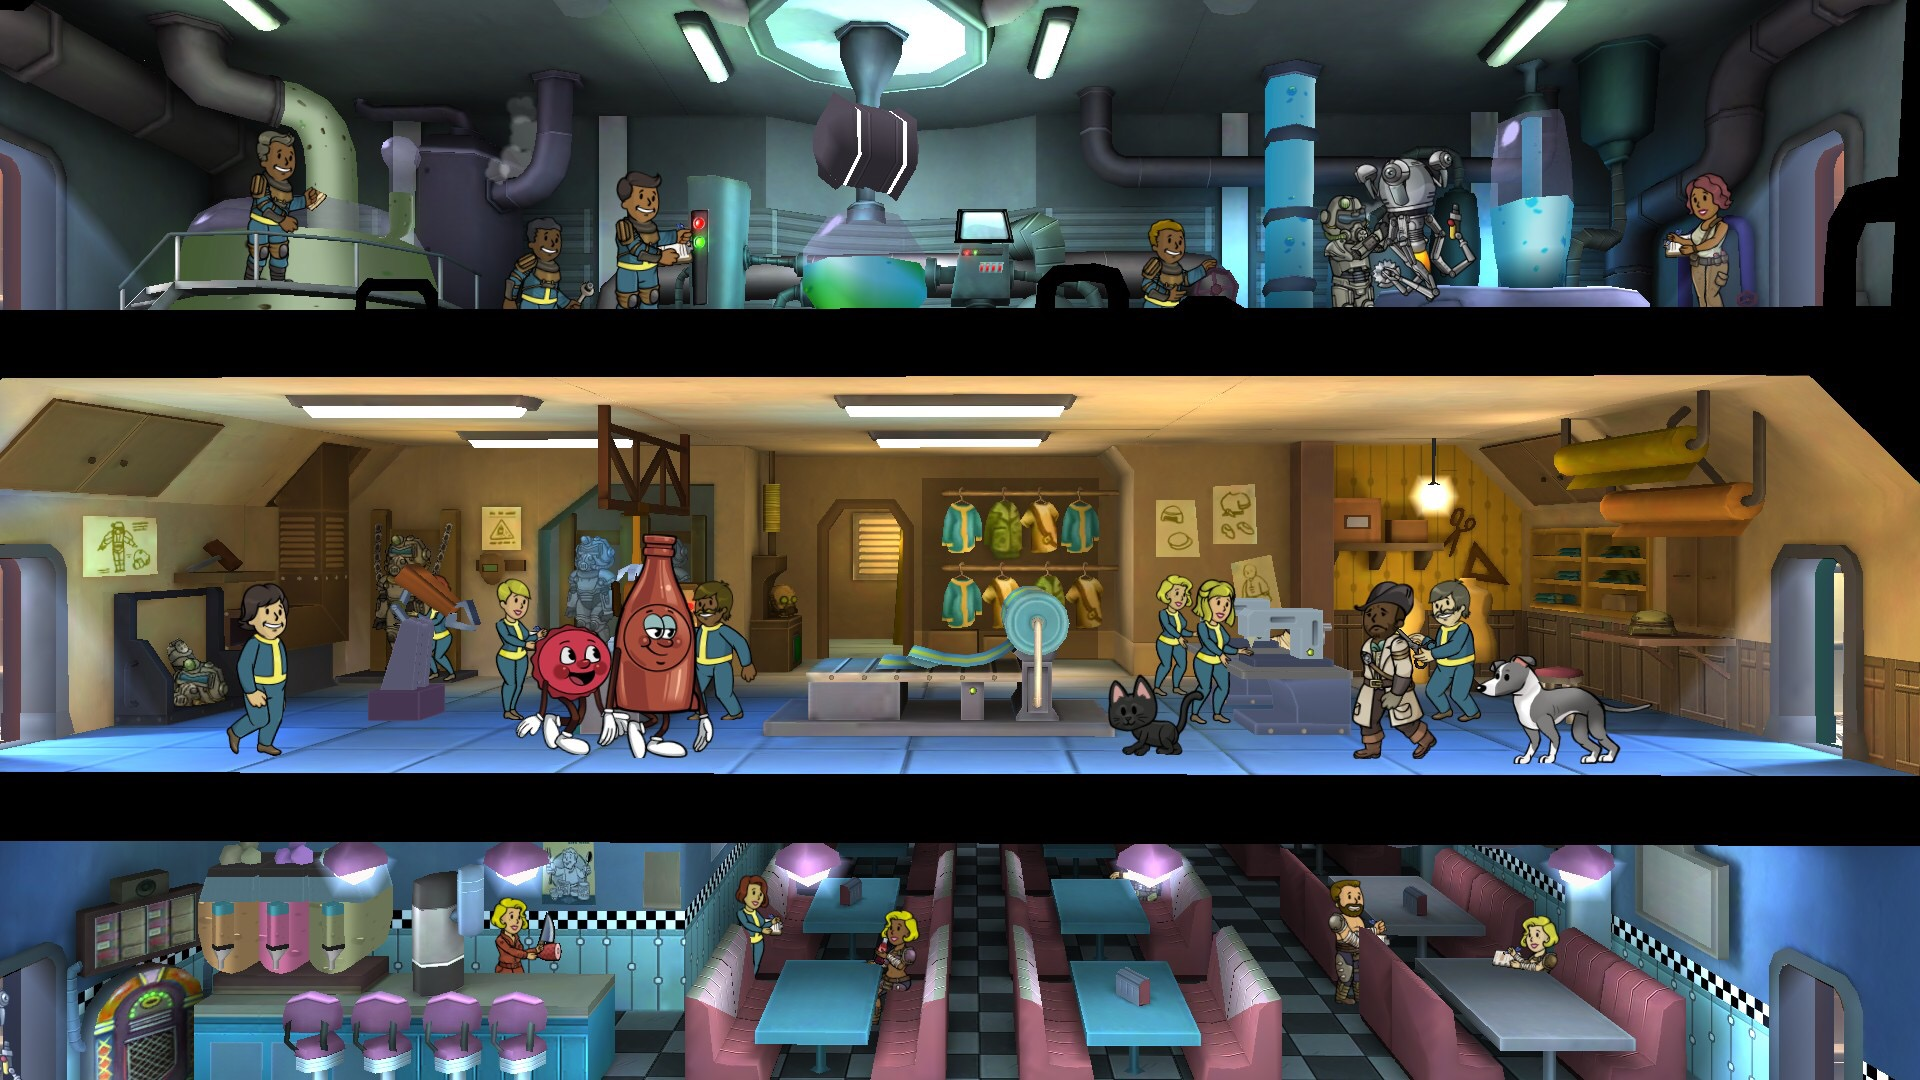 Fallout Shelter Halloween 2020 Quest Fallout Shelter update adds faction themes, holiday celebrations